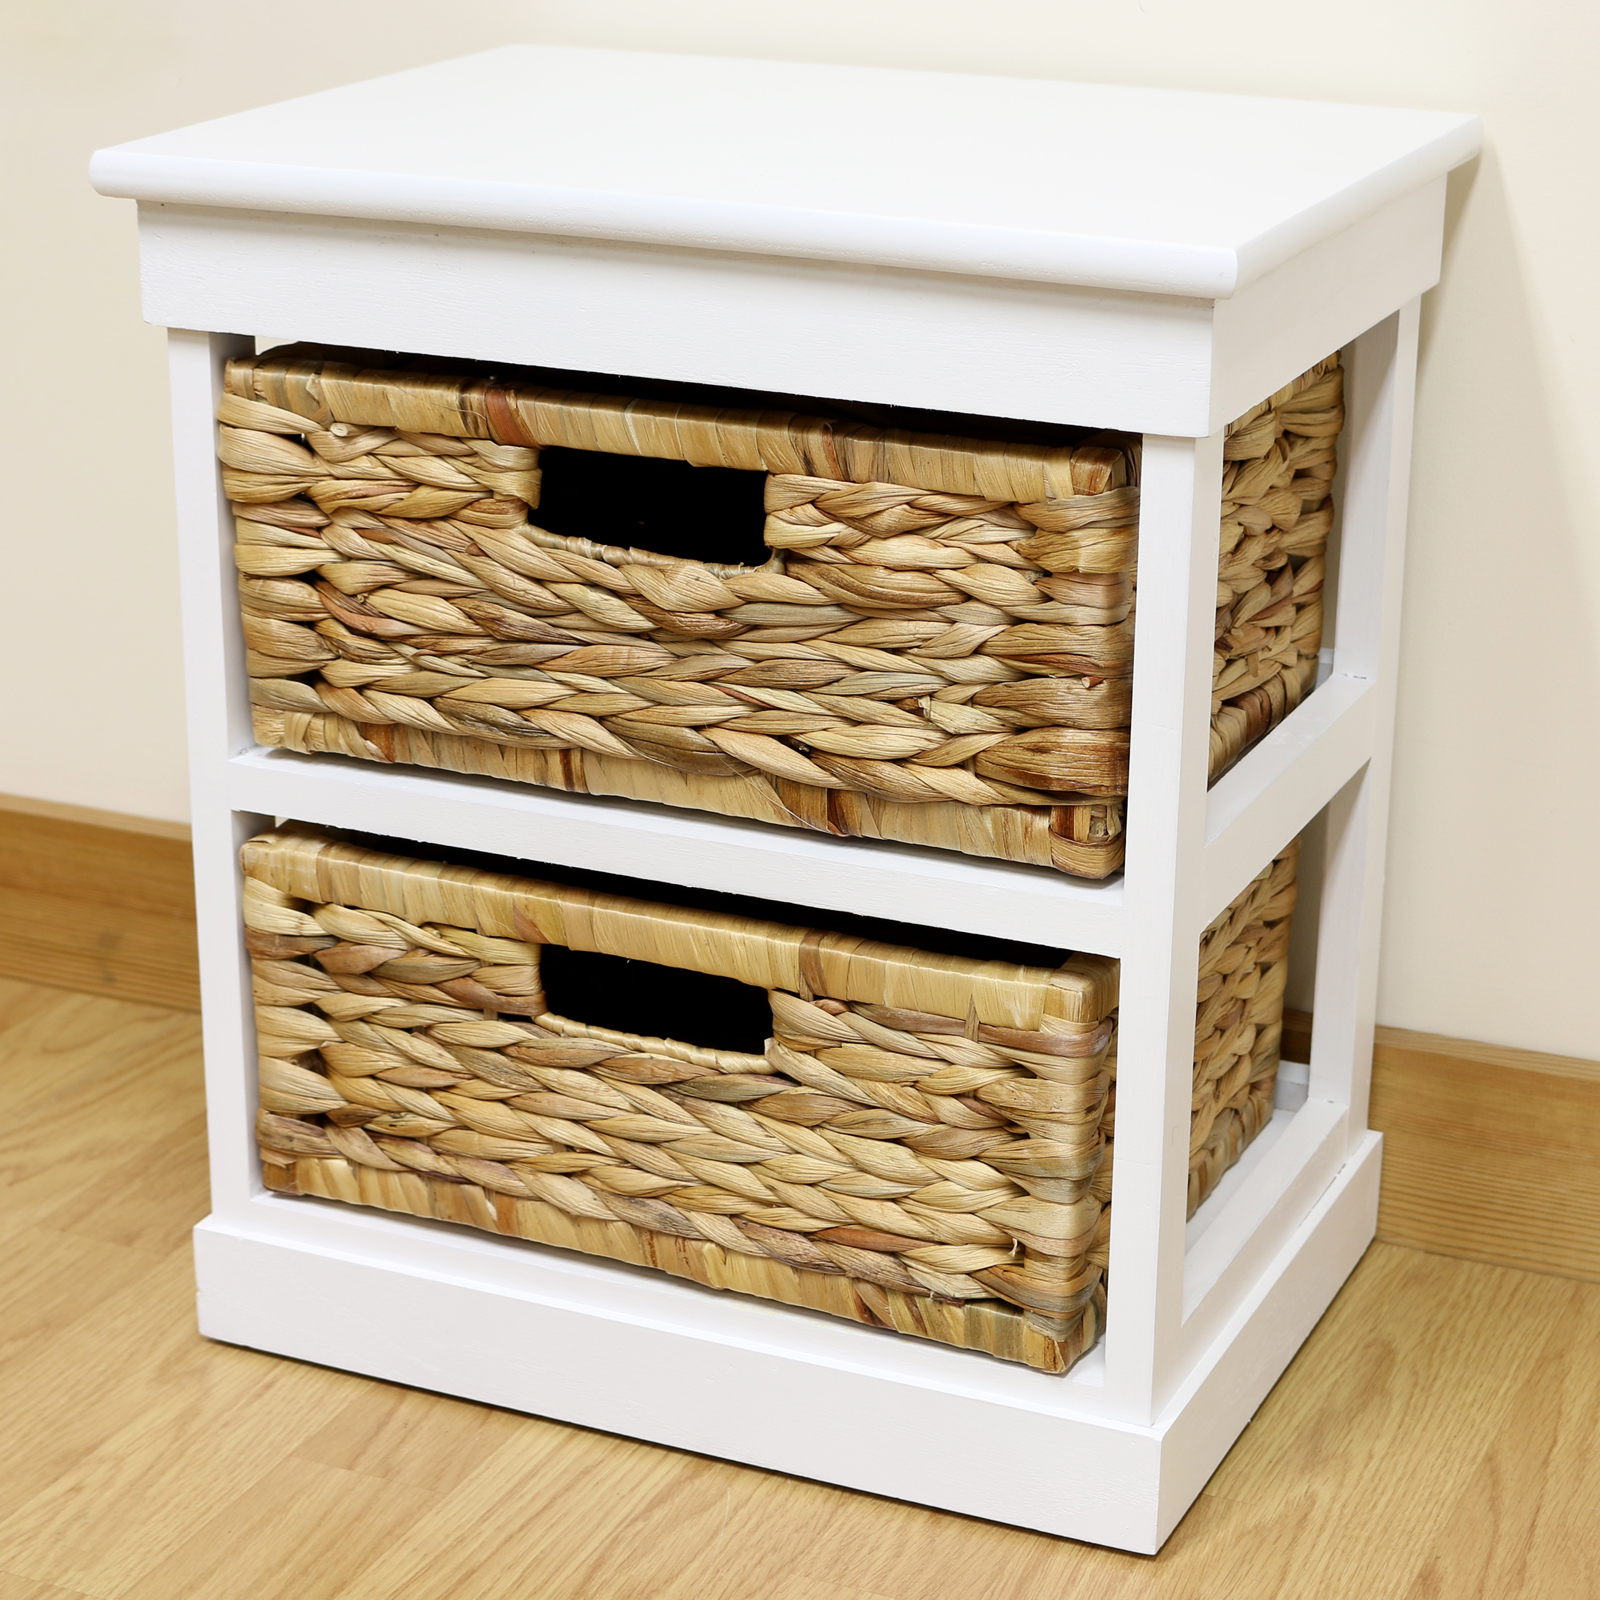 Bathroom Storage Units With Baskets Hartleys Large White